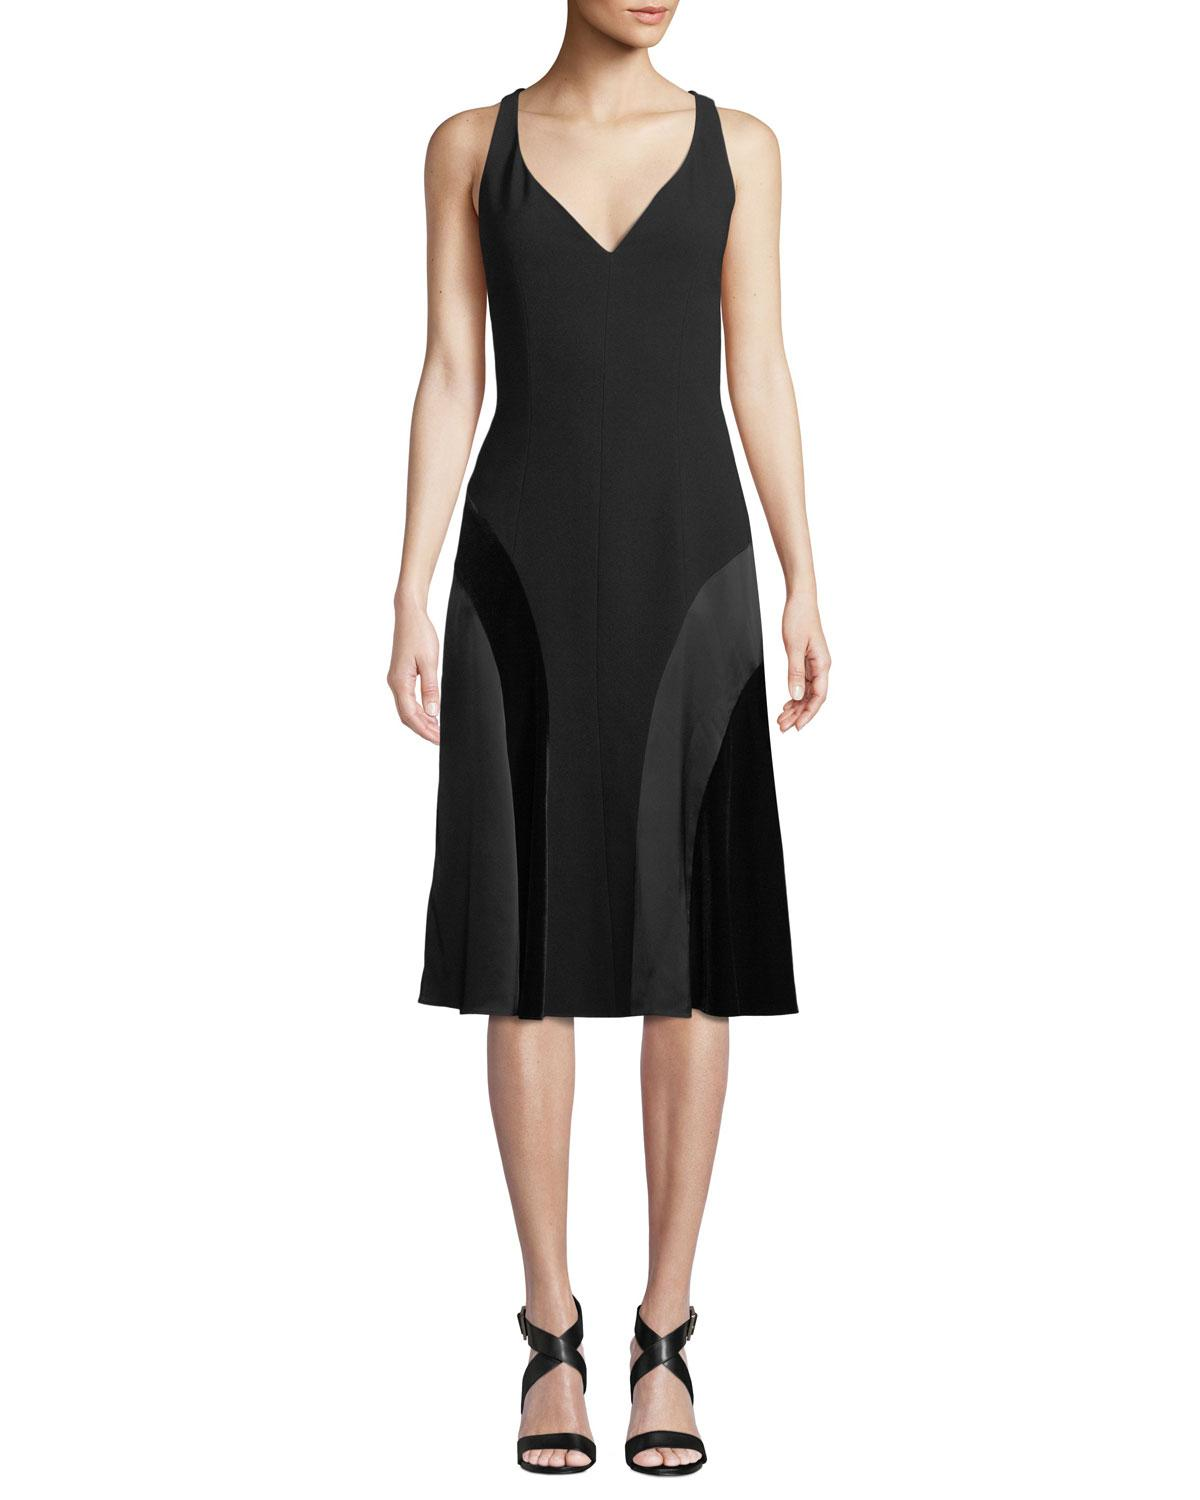 d9b49aee Elie Tahari Zaria Crepe Satin Panel Dress In Black | ModeSens